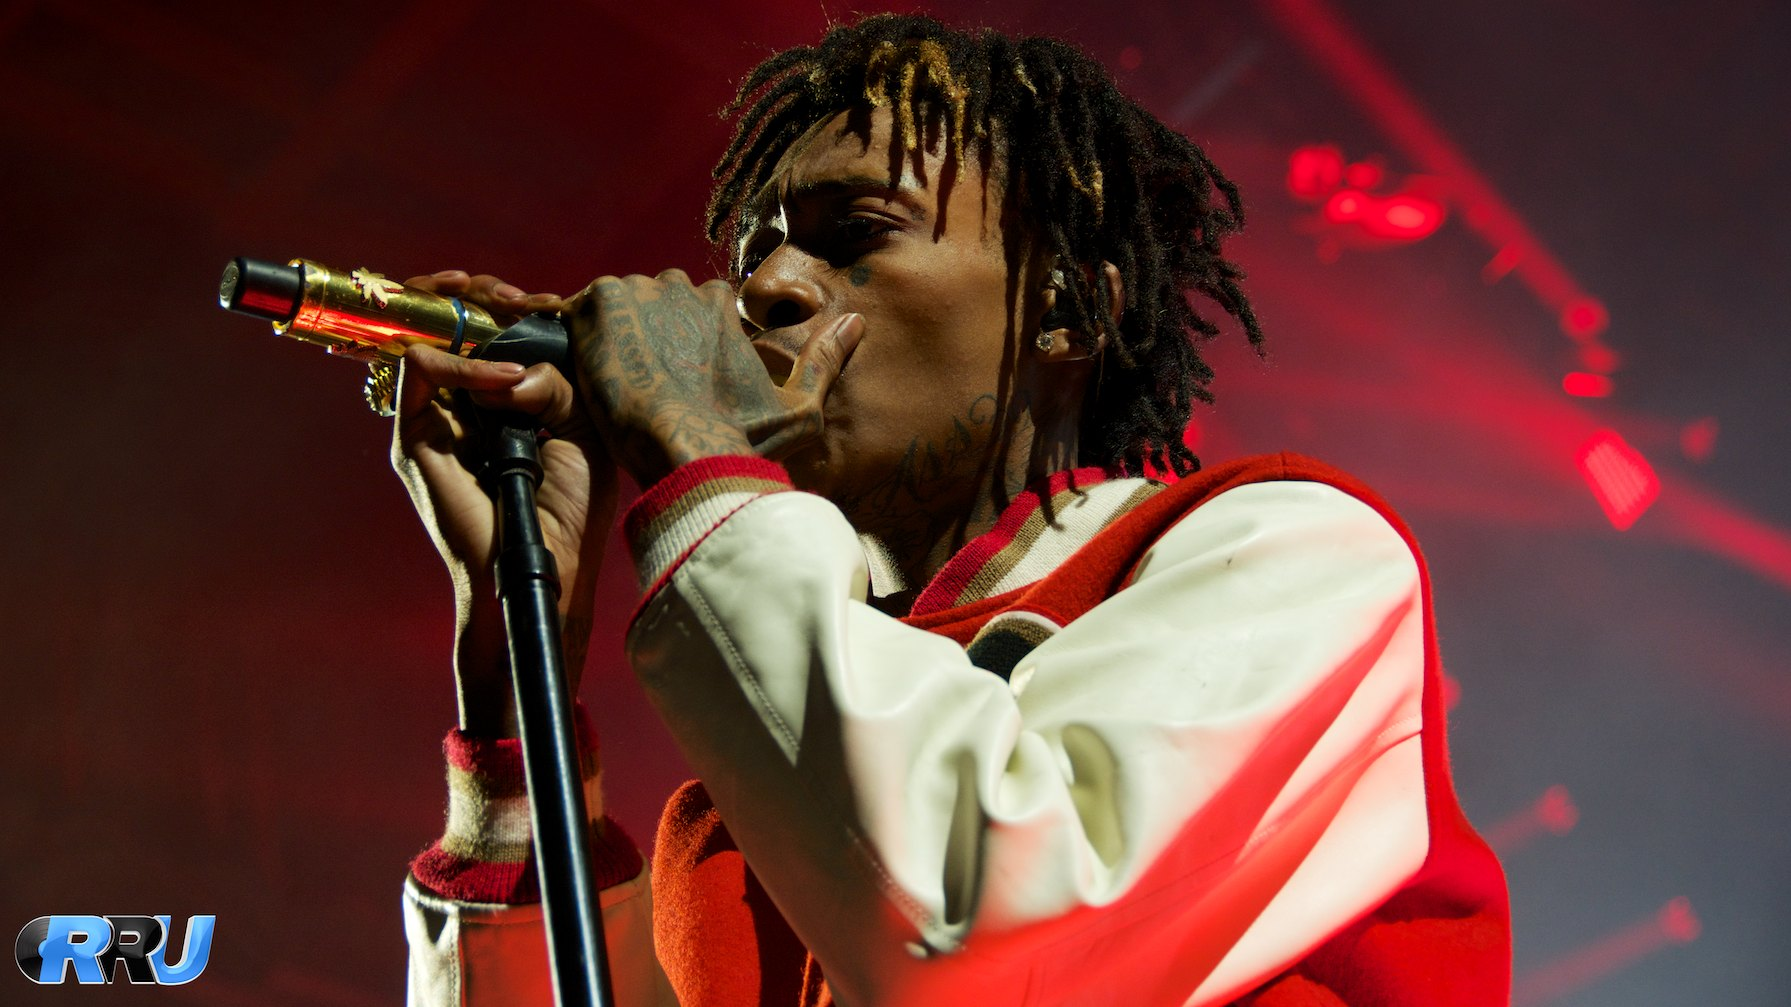 """Wiz Khalifa performing as part of the """"Under The Influence Of Music"""" tour in Mansfield, MA on August 2nd, 2014 (Benjamin Esakof/Roman's Rap-Up)."""